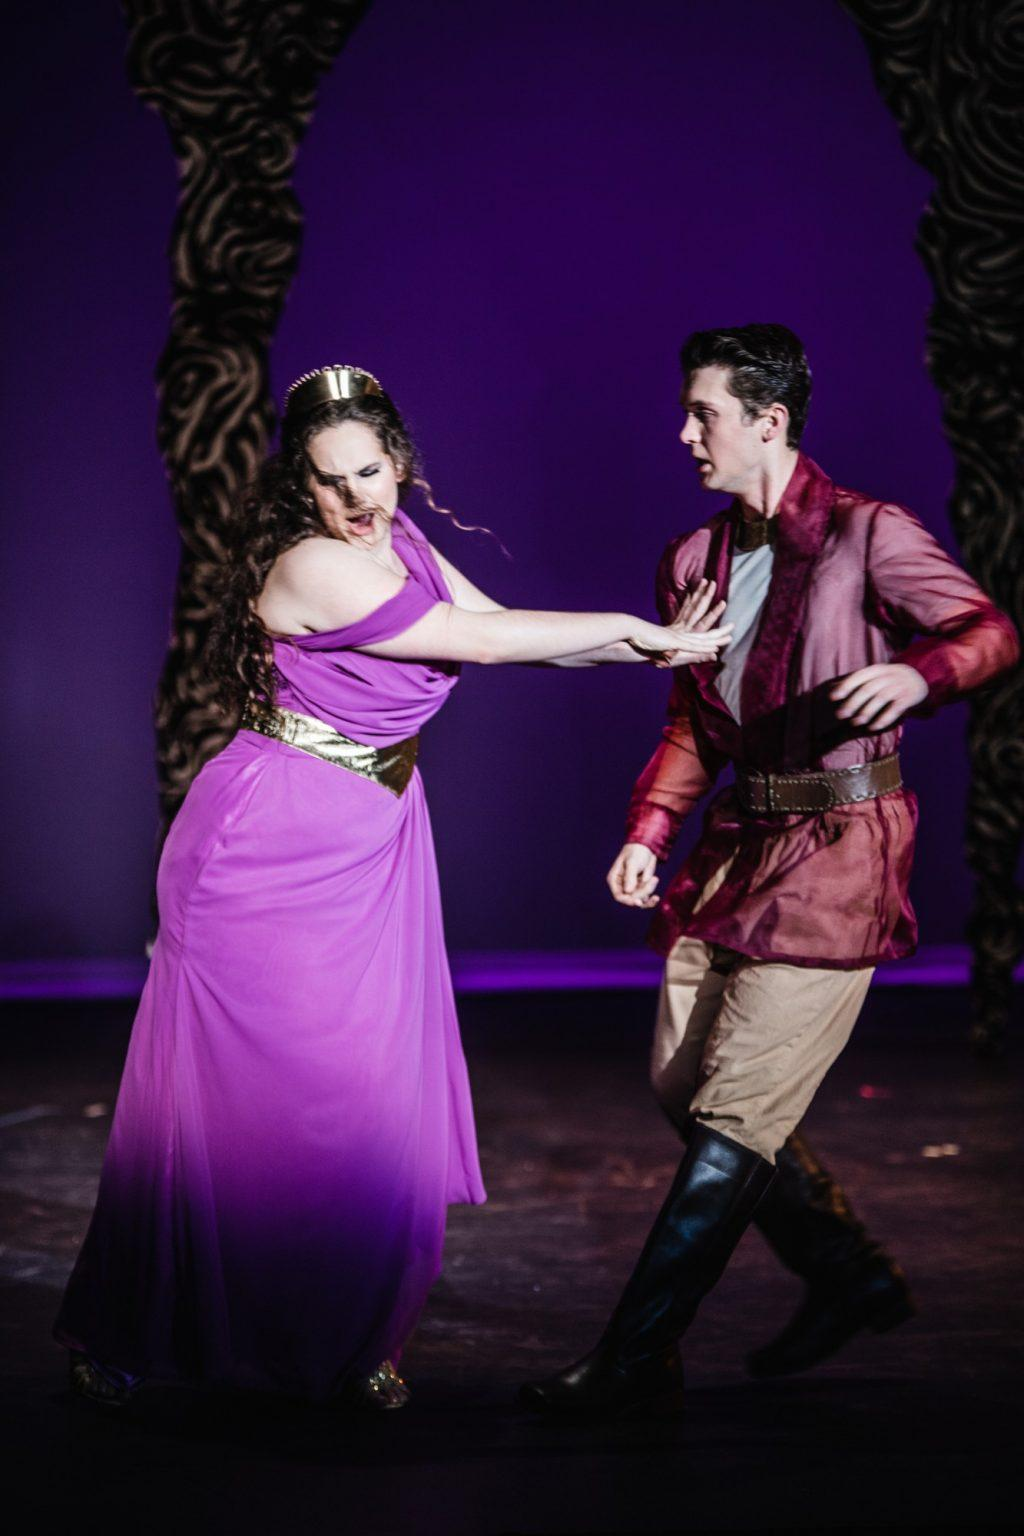 Dido, Queen of Carthage (Withers), pushes away her Greek love Aeneas (Joe Hebel). The opera follows the tragic journey of the couple's struggle between love and prophesy.